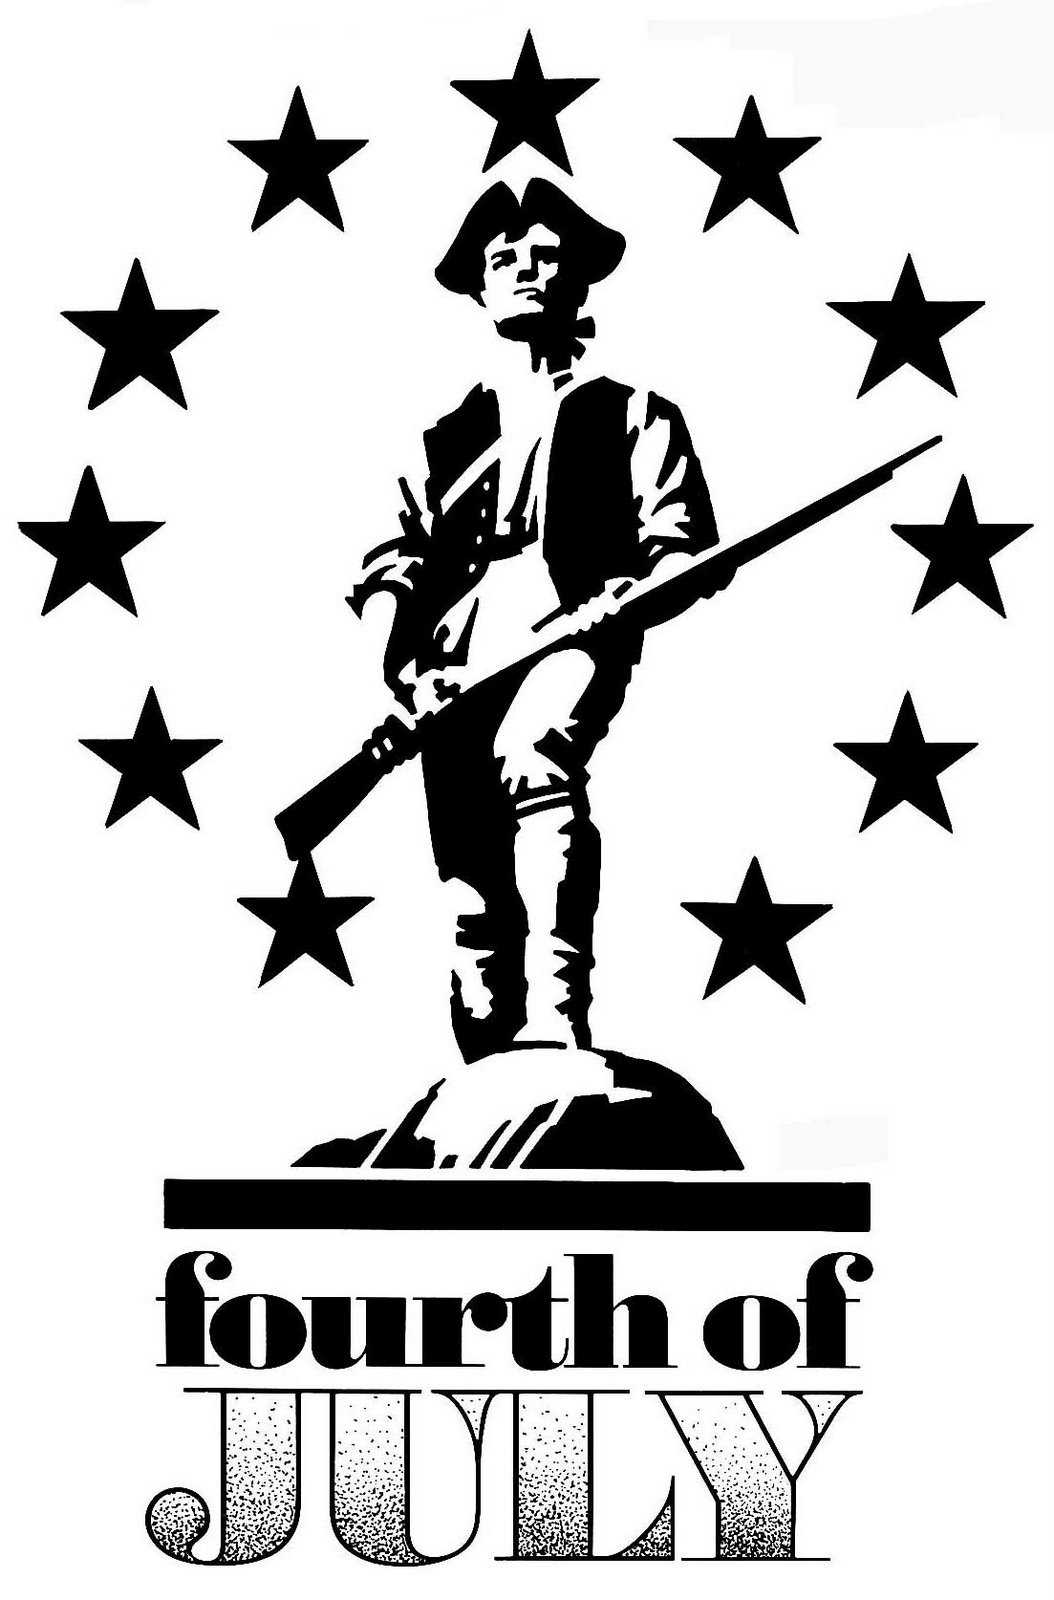 4th of July Minutemen Public Domain Clip Art Photos and Images.